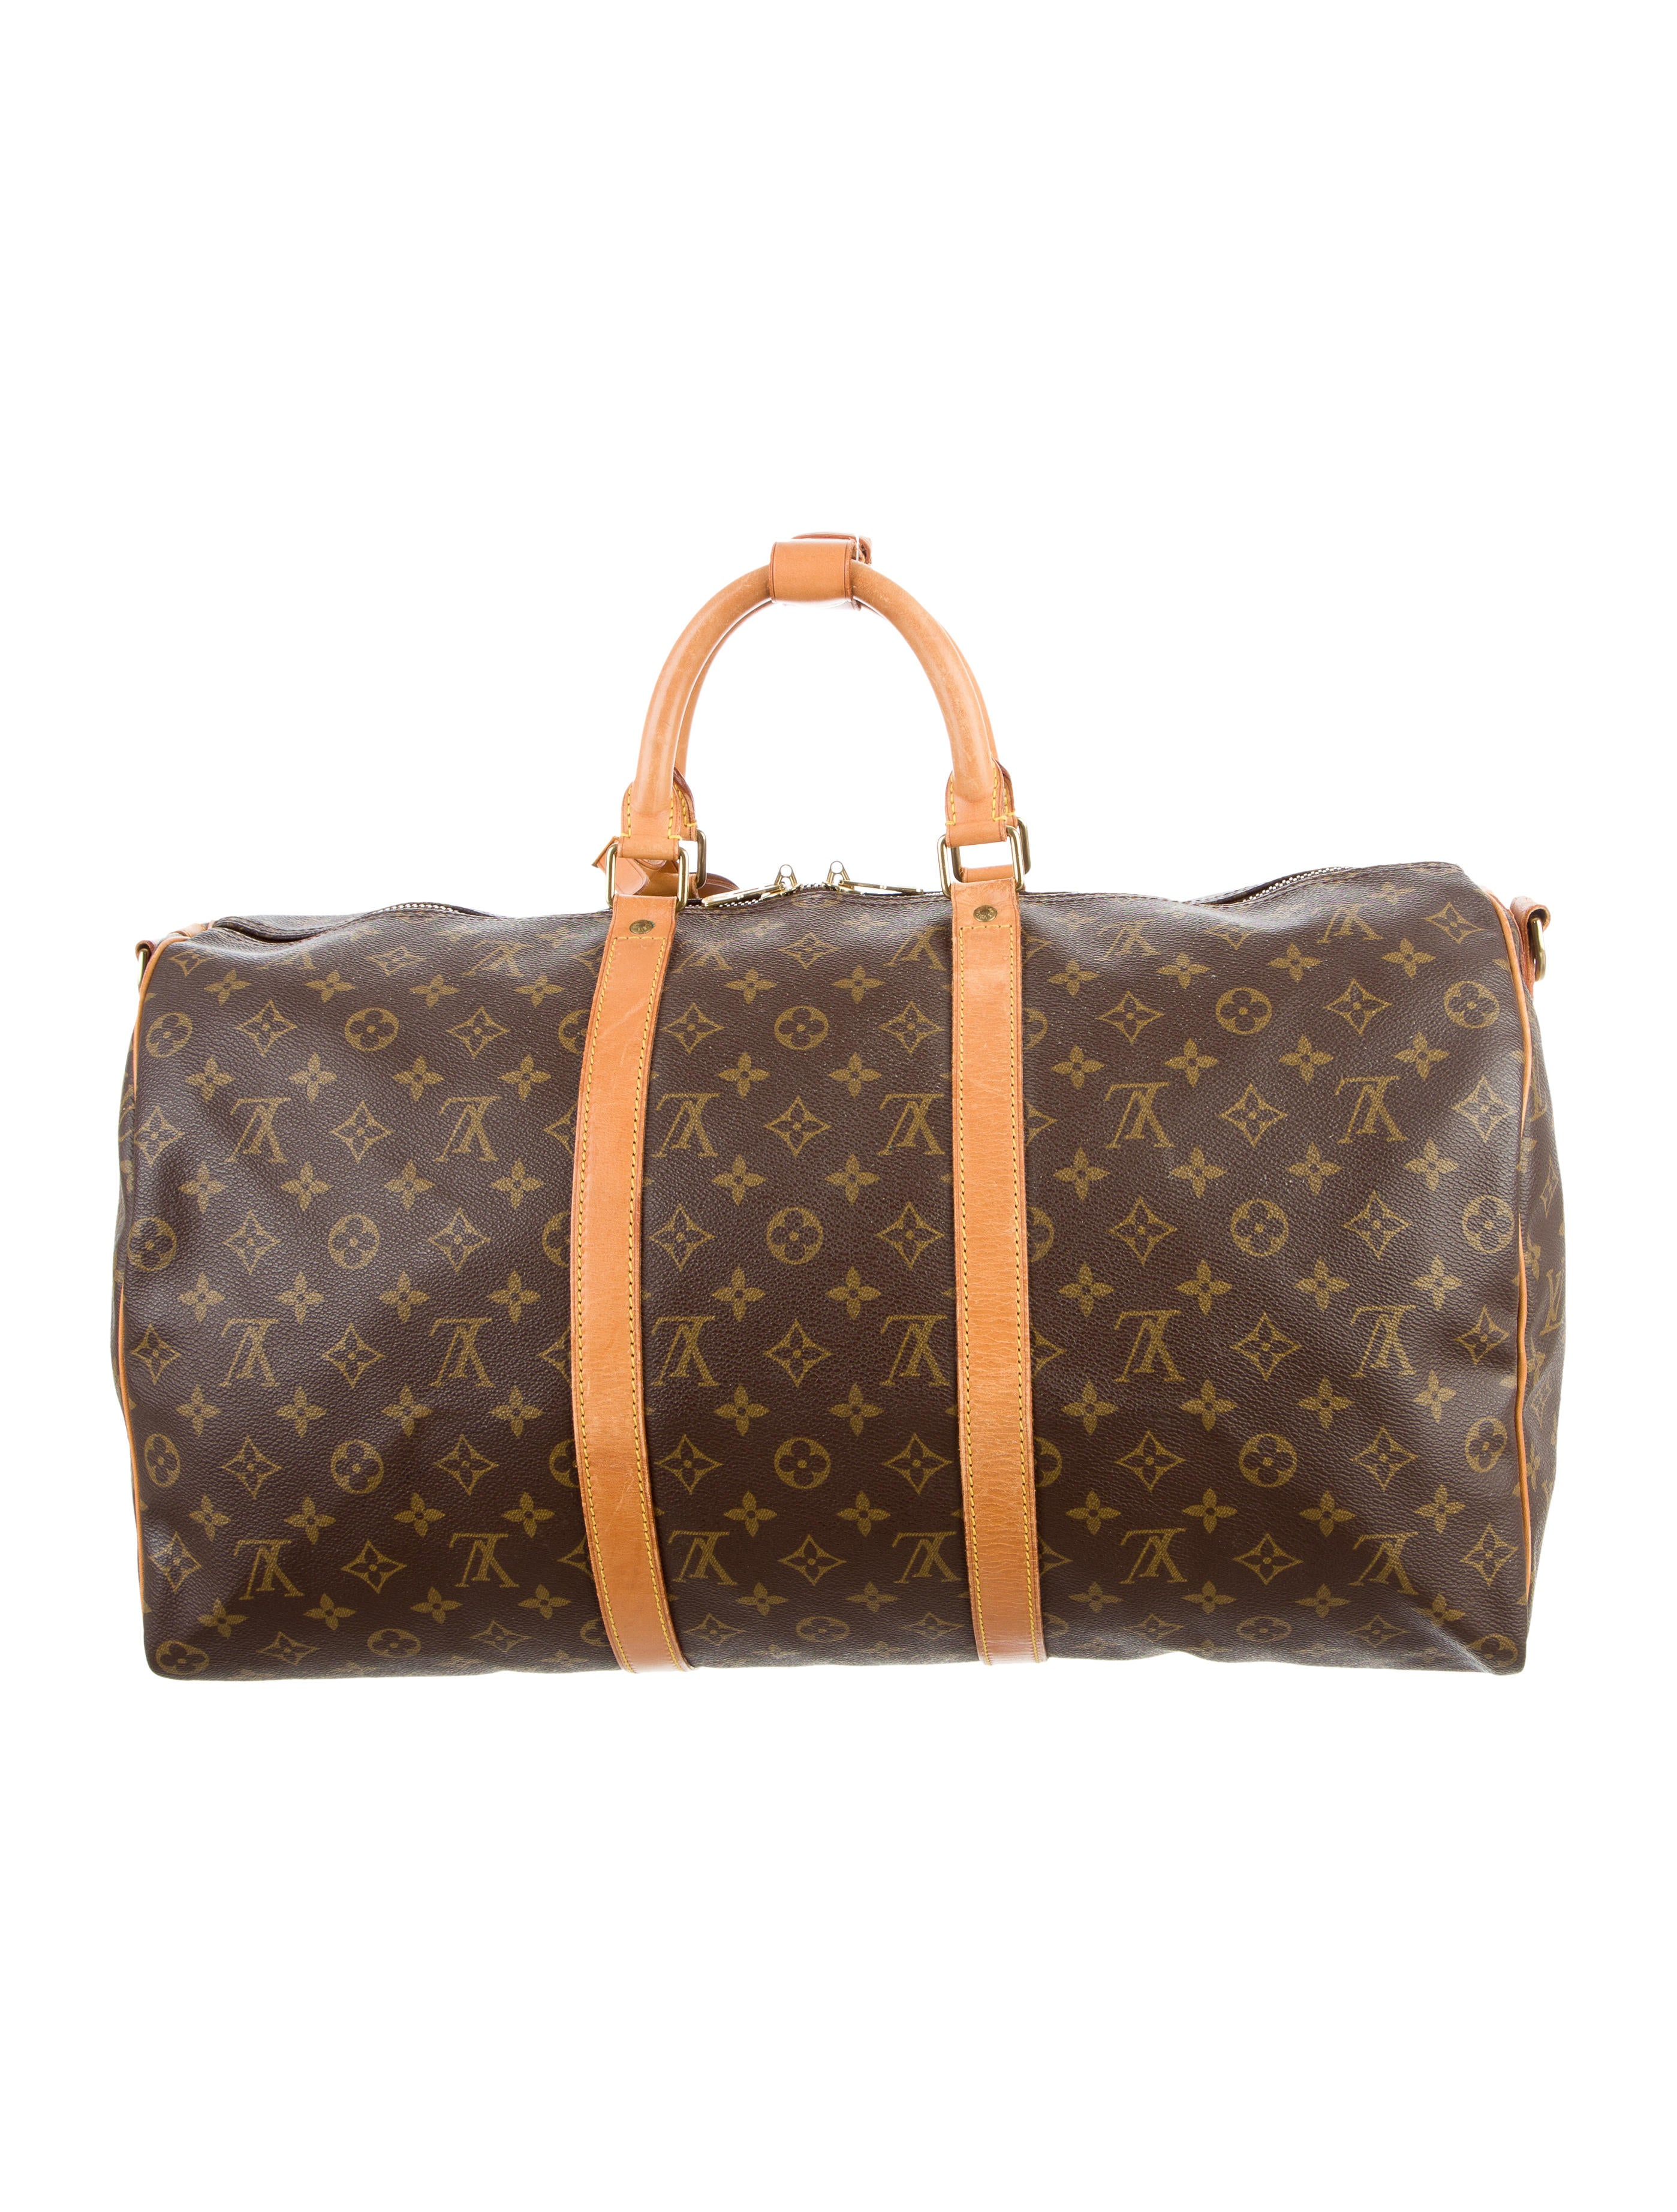 louis vuitton monogram keepall bandouli re 50 bags lou120777 the realreal. Black Bedroom Furniture Sets. Home Design Ideas